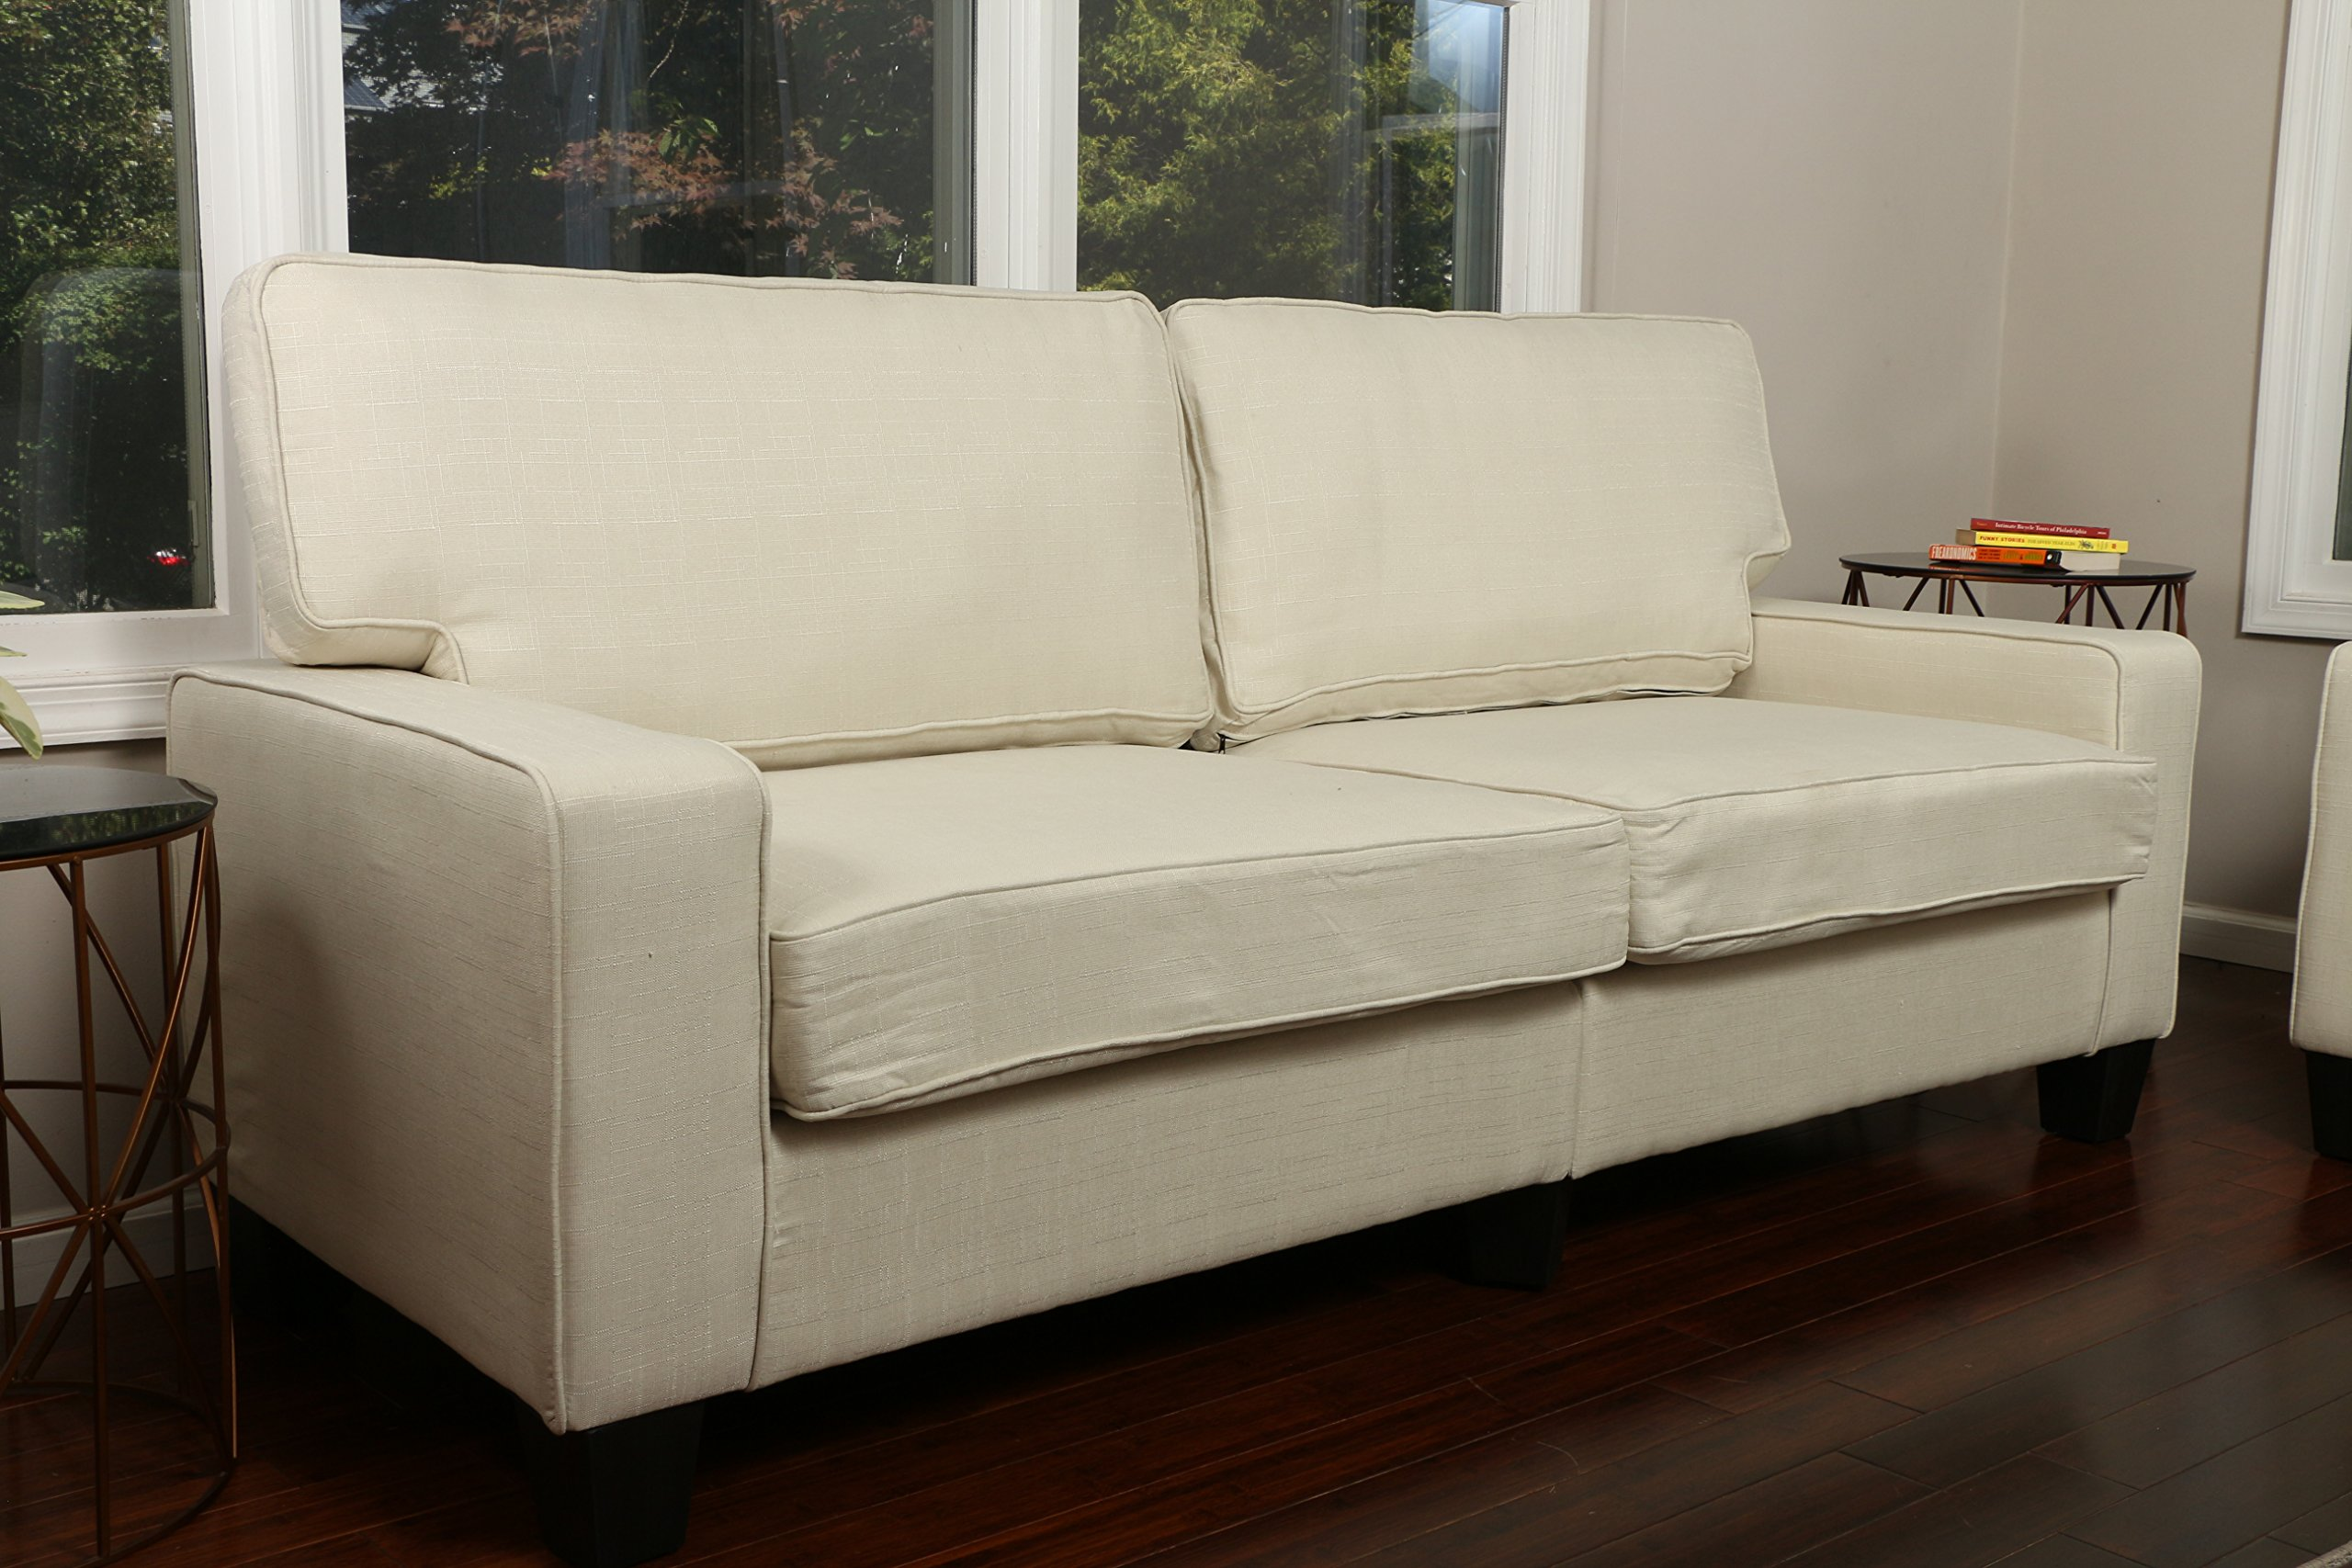 Home Life 2-3 Person Apartment Size Contemporary Pocket Coil Hardwood Sofa 281 73'' Wide - Light Beige by LIFE Home